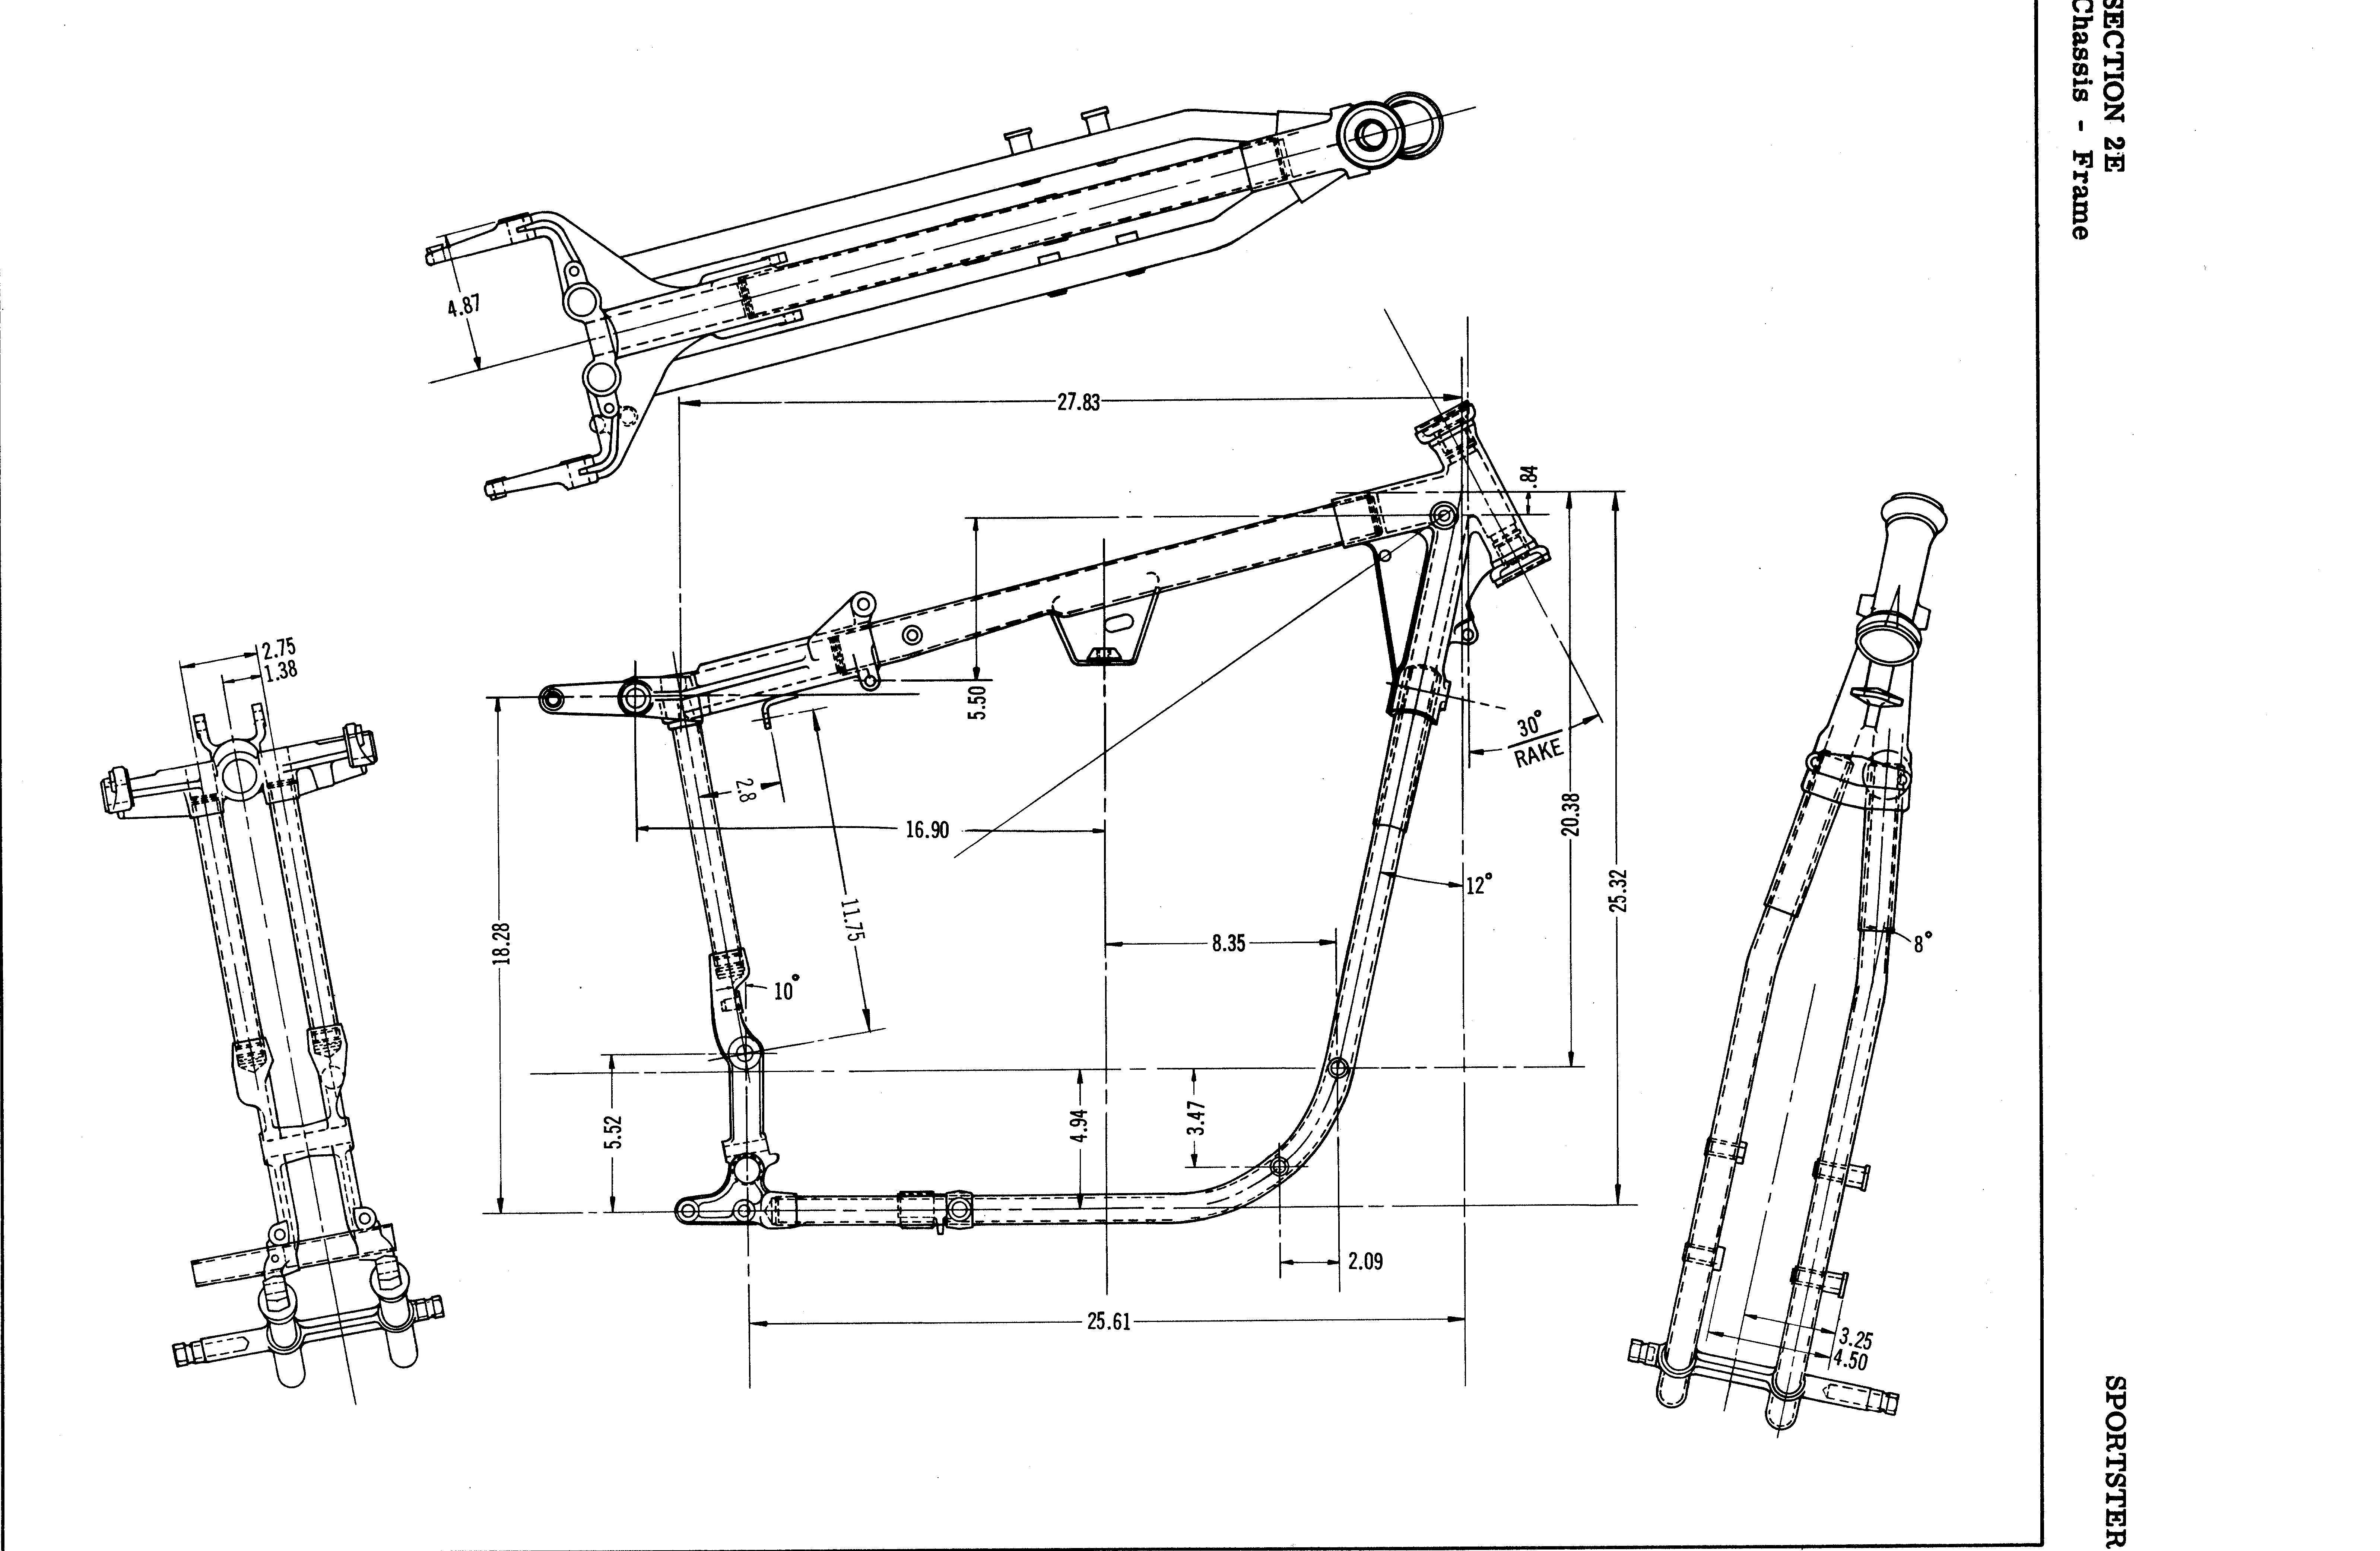 Harley Softail Frame Diagram Pwm Wiring For Hho Systems Ironhead Motorcycle Engines And Blueprints Pinterest Exploded View Iron 883 Engine Bobber Davidson